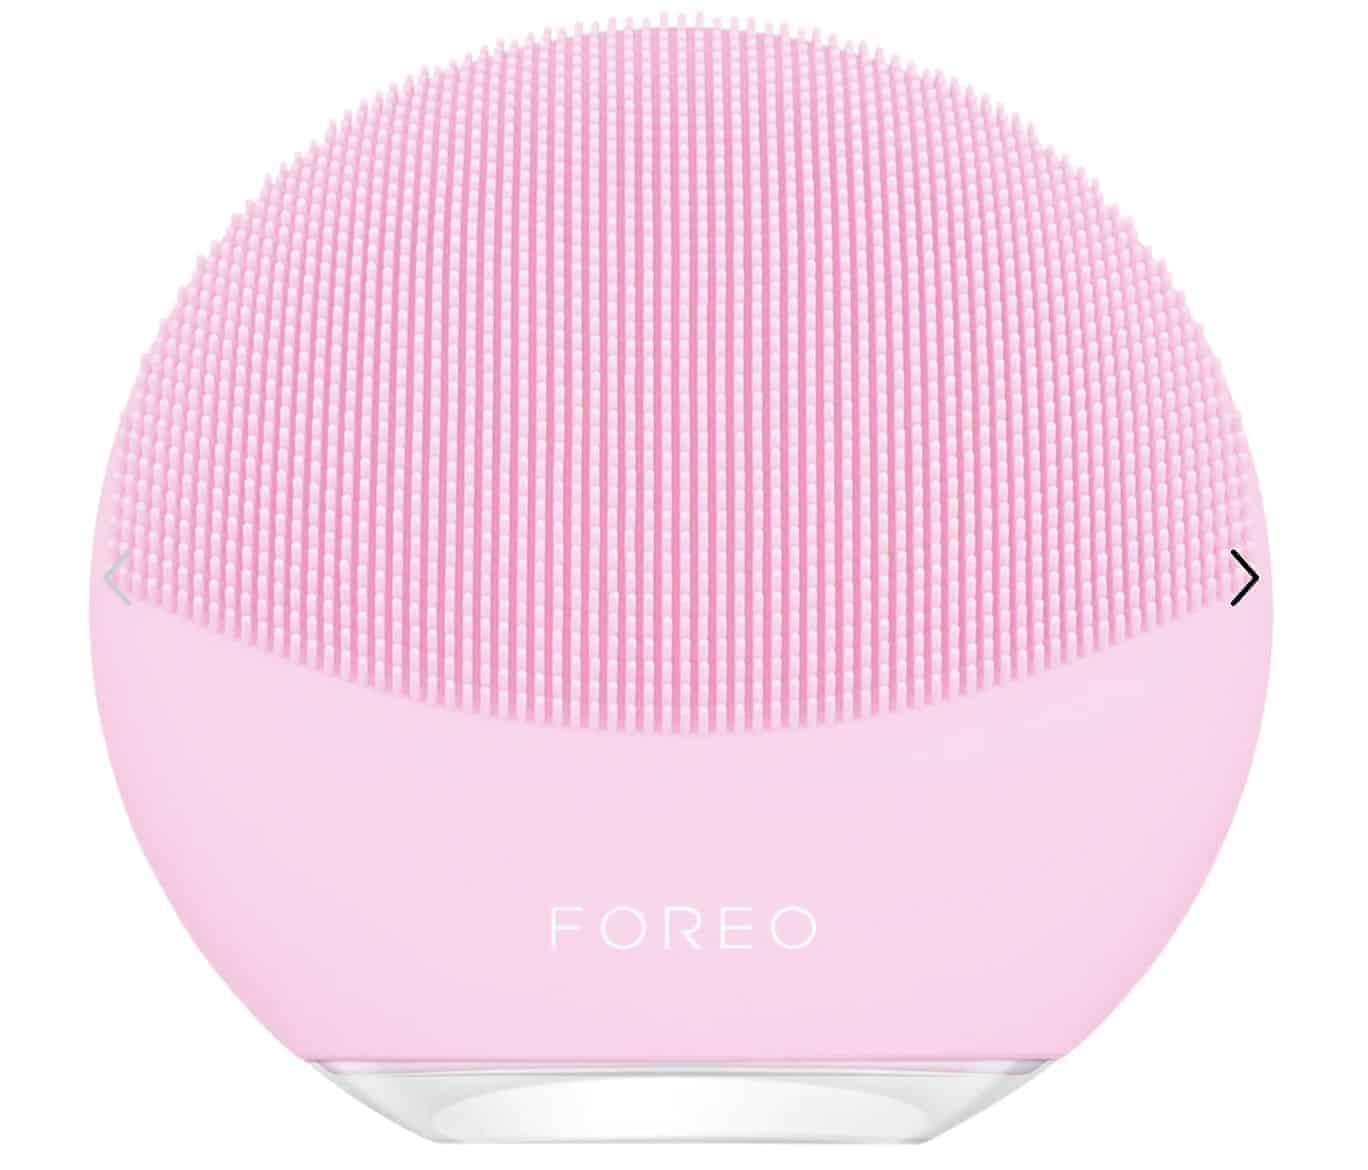 luna-foreo-facial-cleansing-device-gift-ideas-for-mothers-day